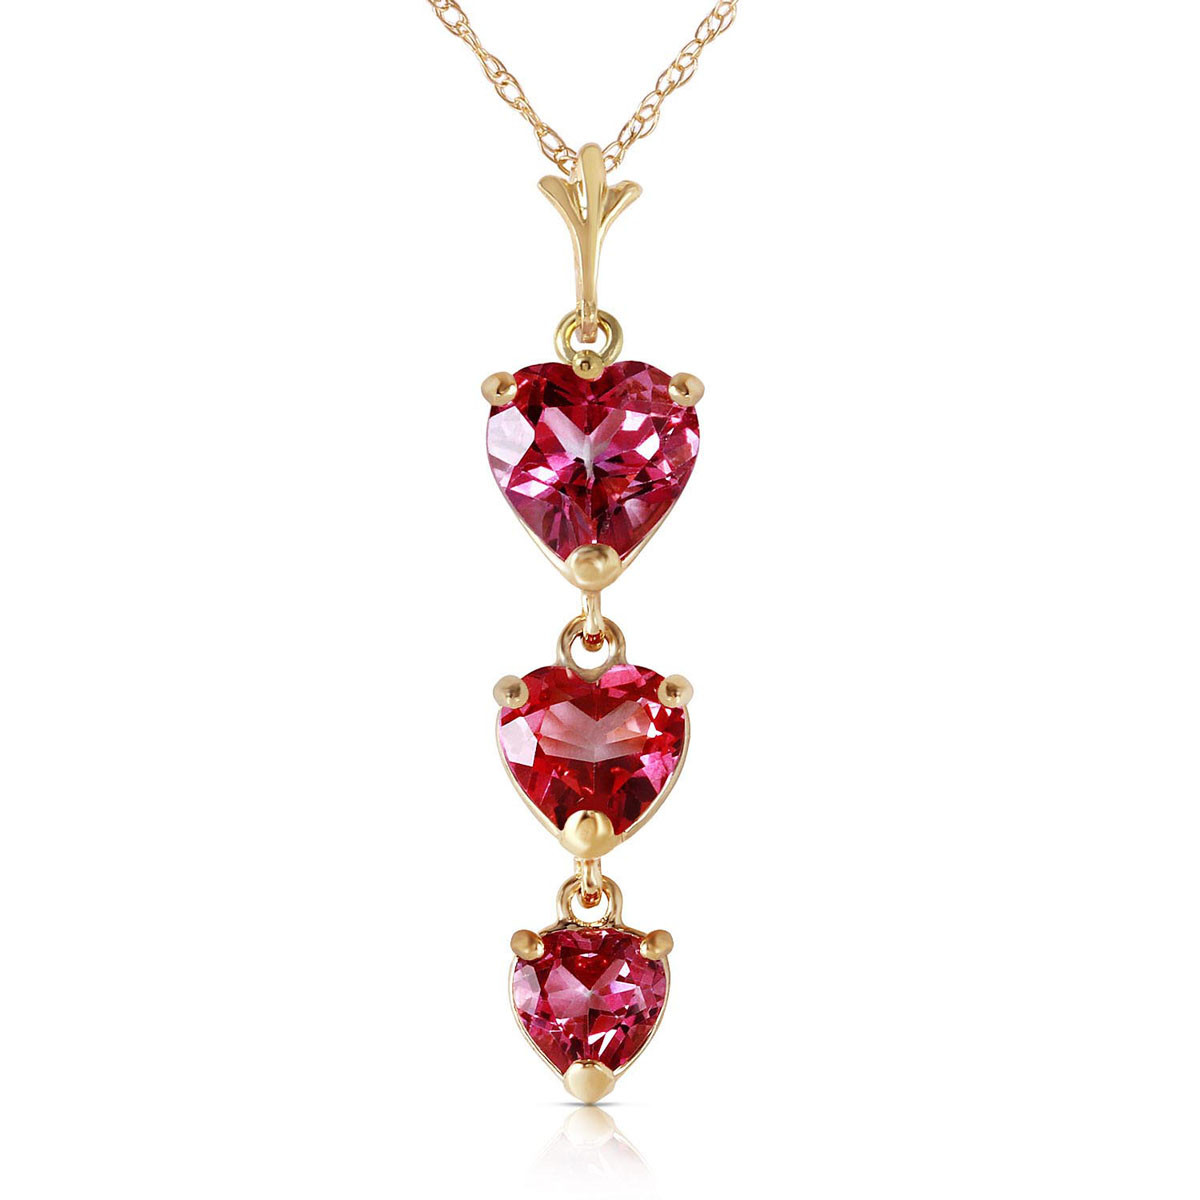 Pink Topaz Triple Heart Pendant Necklace 3.03 ctw in 9ct Gold